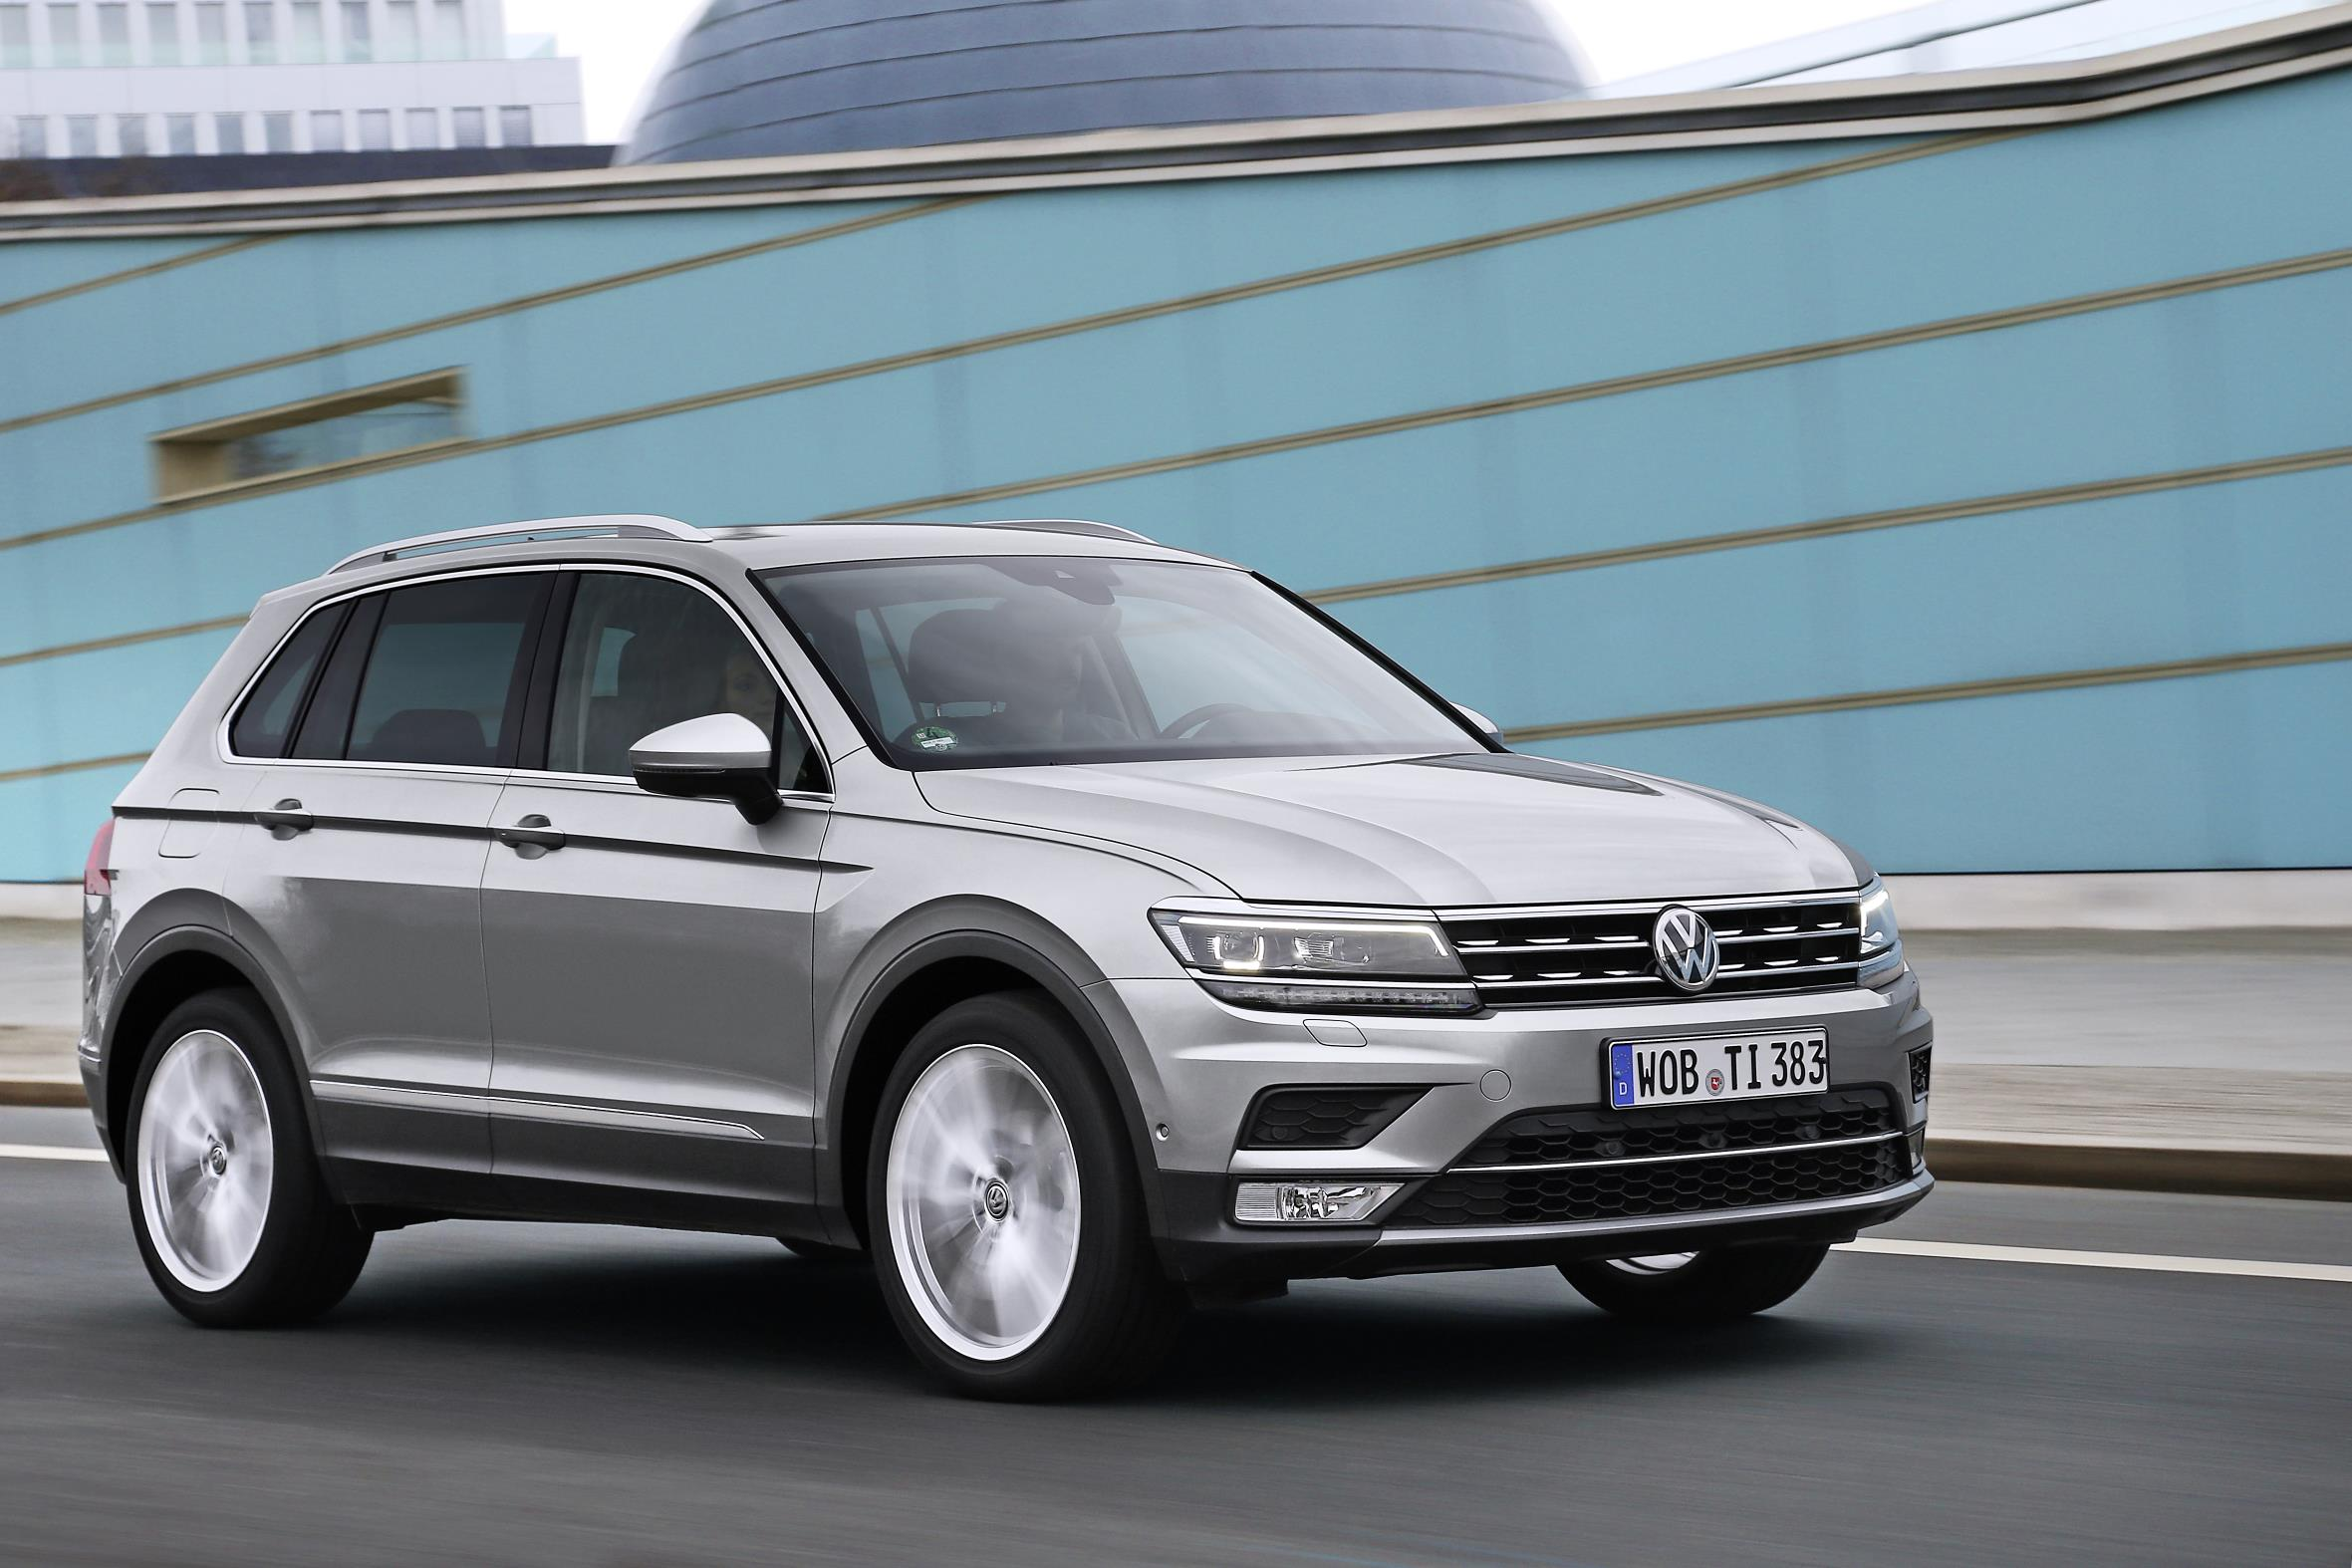 Volkswagen Tiguan 2 Desktop wallpapers